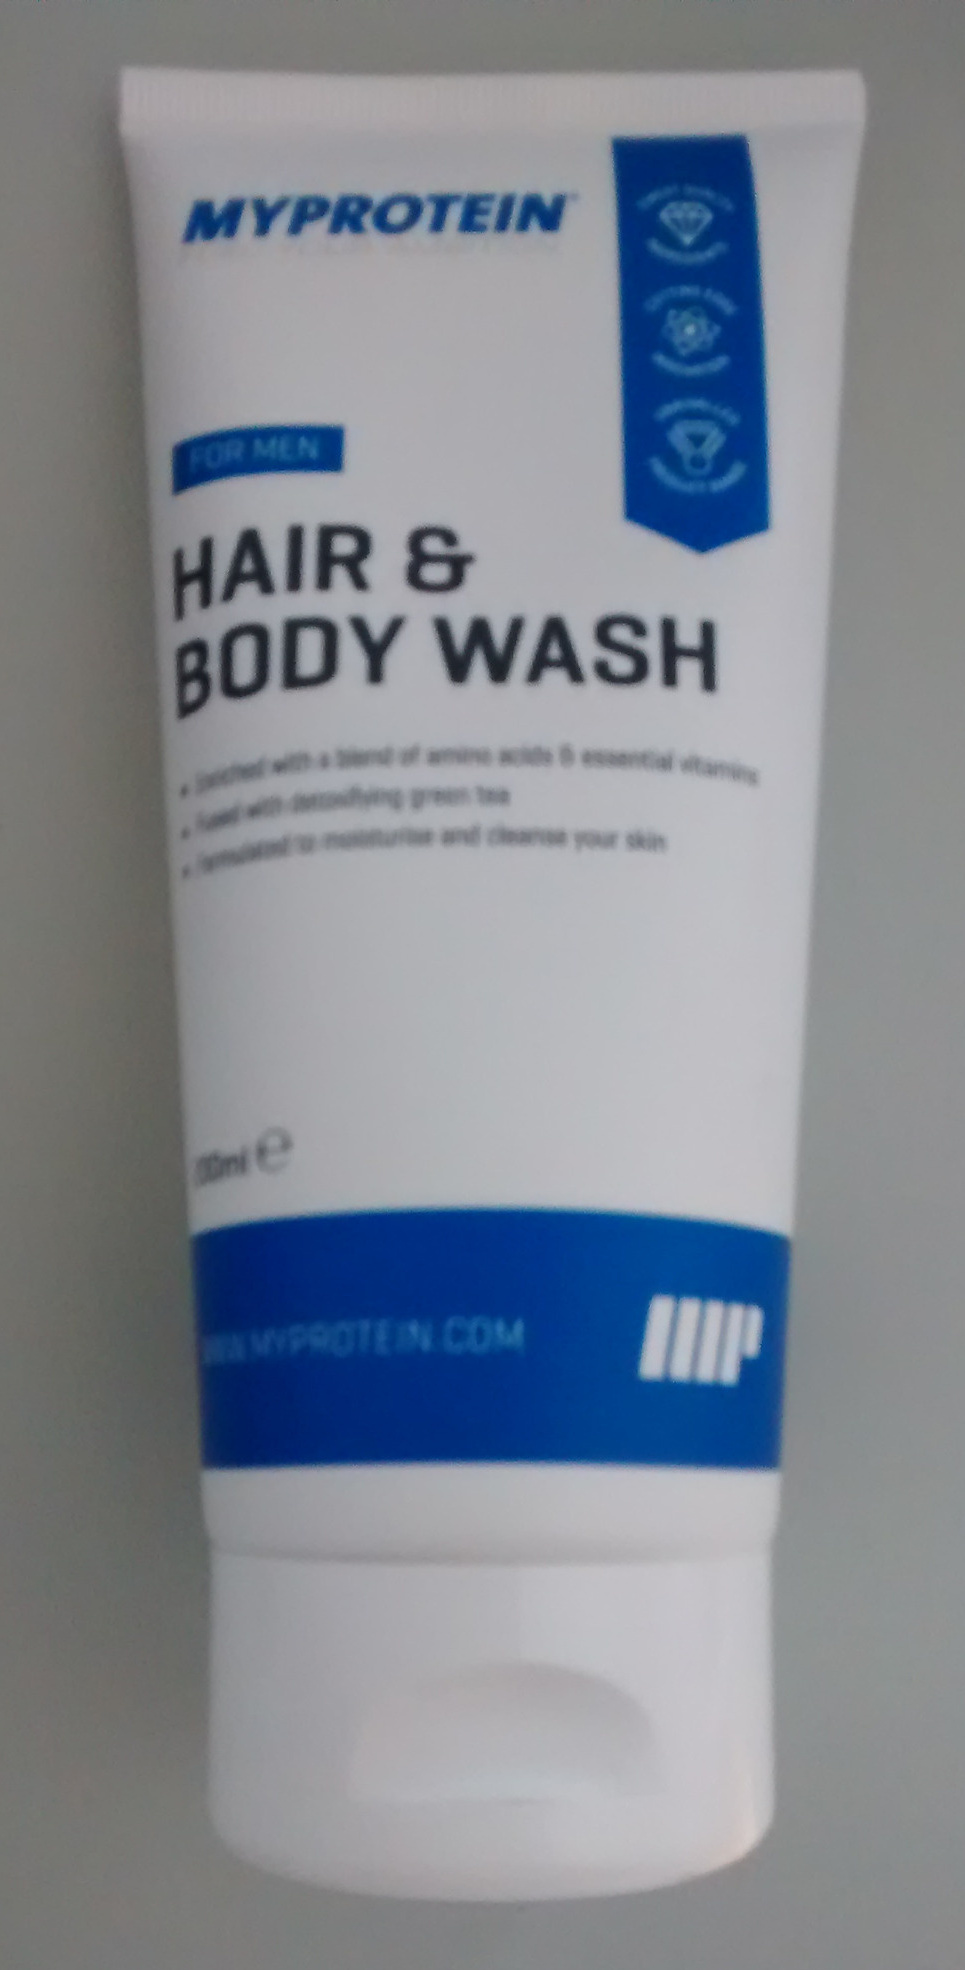 Hair & body wash - Product